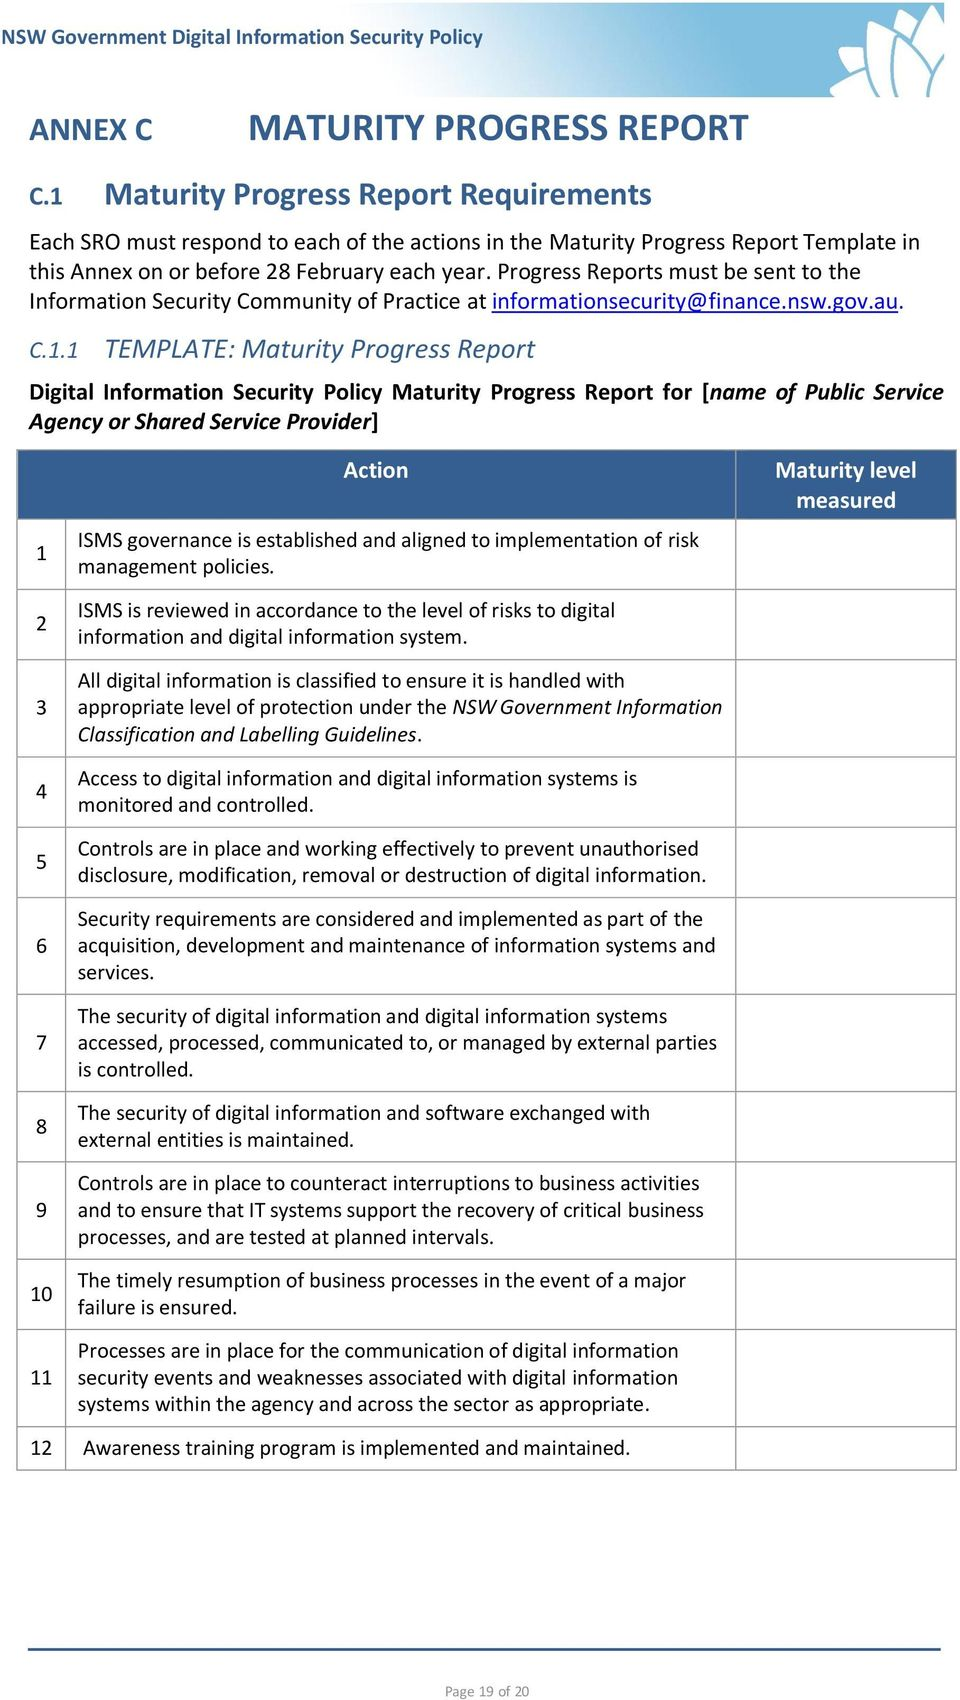 NSW Government Digital Information Security Policy - PDF